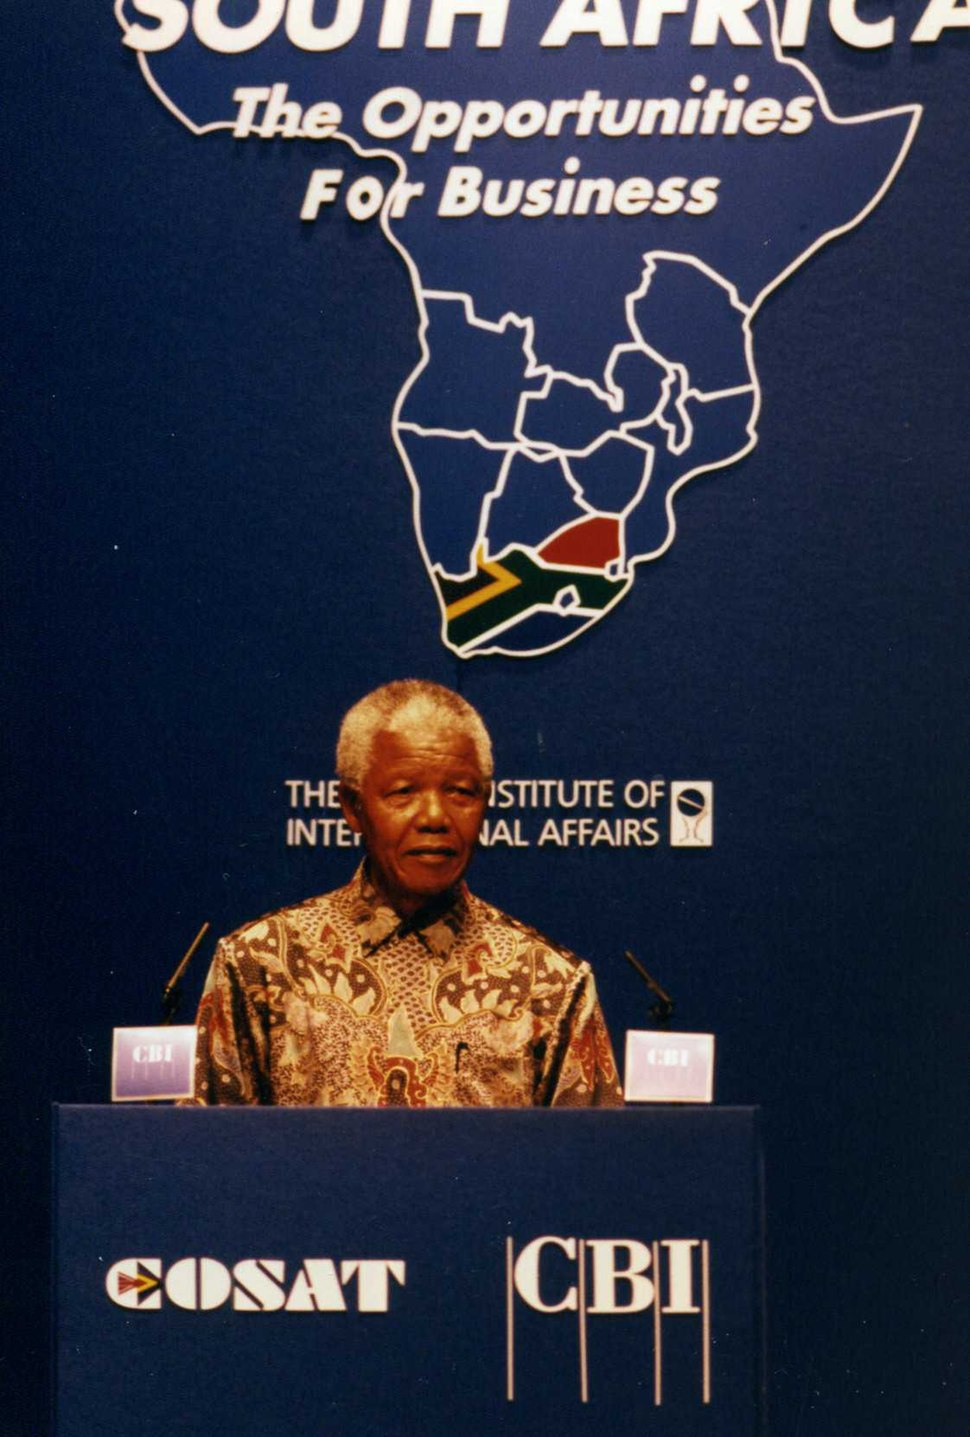 Nelson Mandela at the %27South Africa The opportunity for business%27 conference, Chatham House.